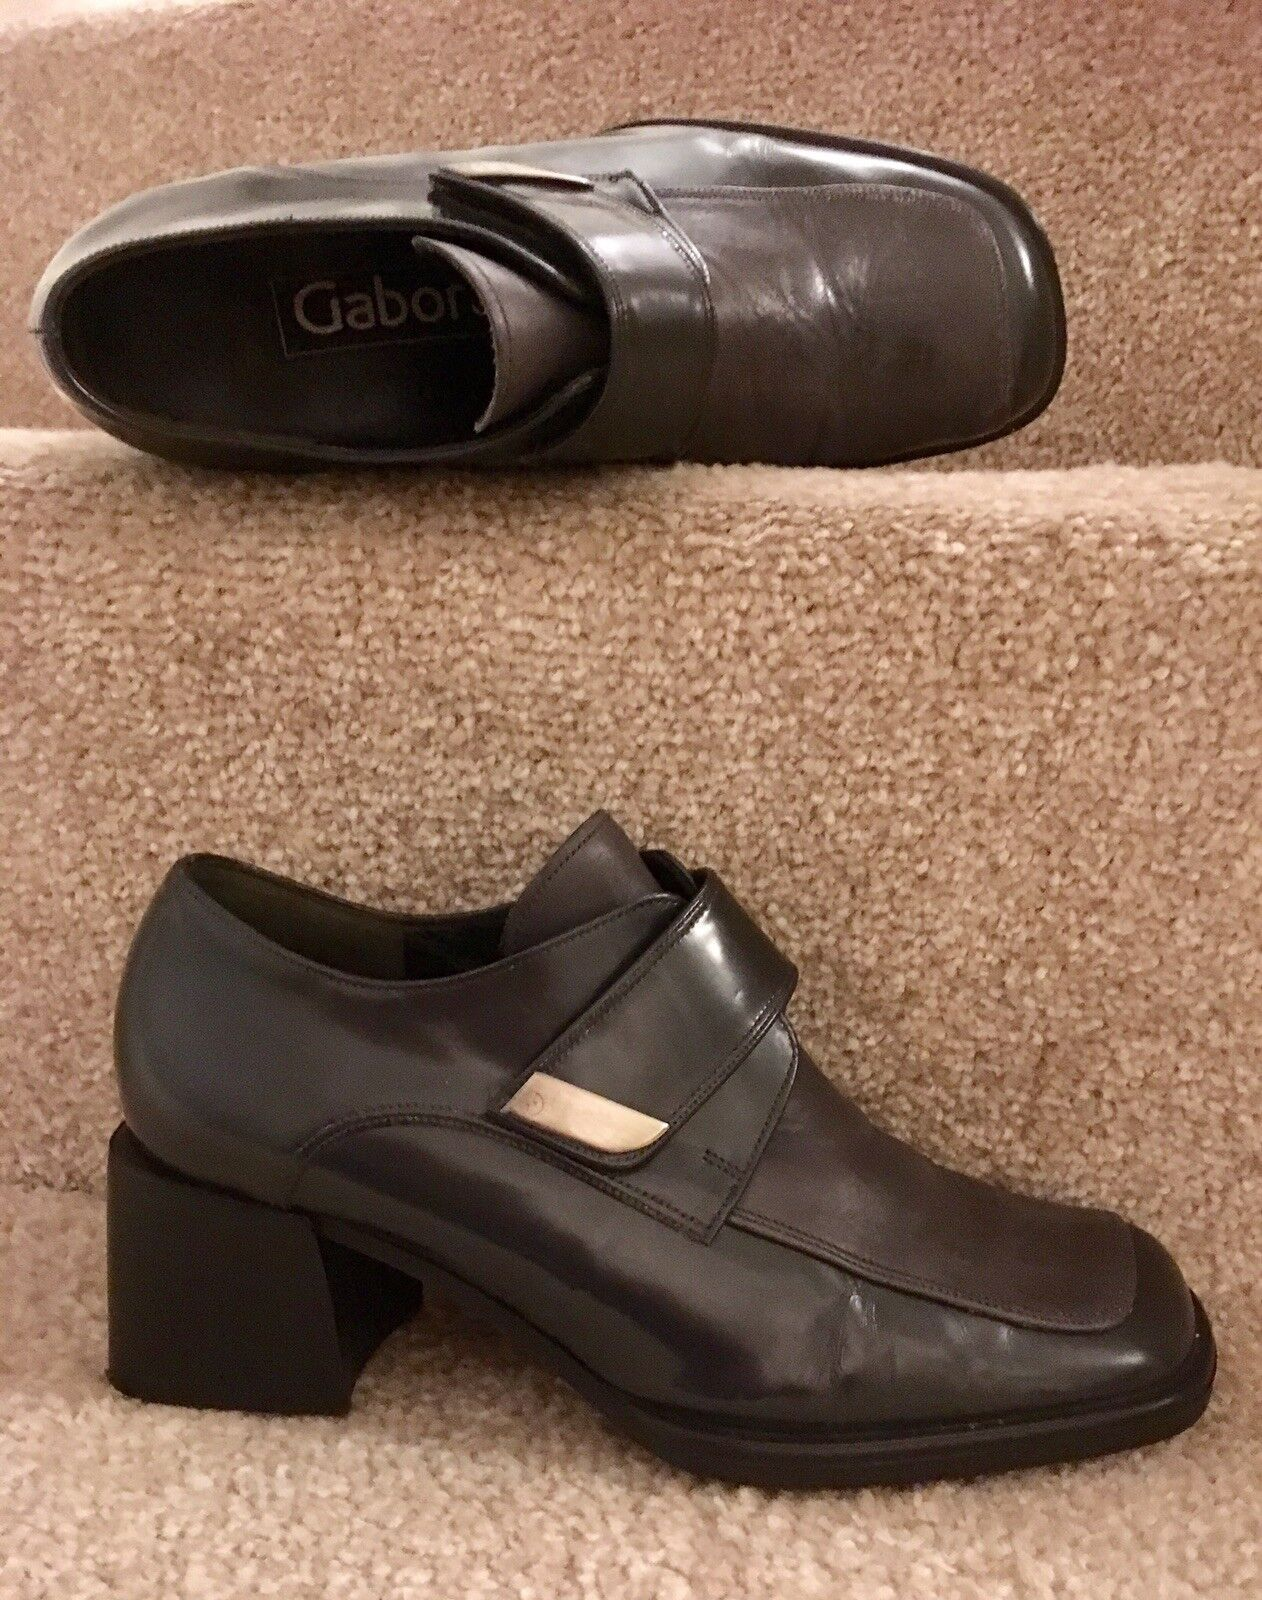 Gabor Fashion Ankle Boots Size 3.5 4 Two Tone Grey Quality Leather Women's shoes